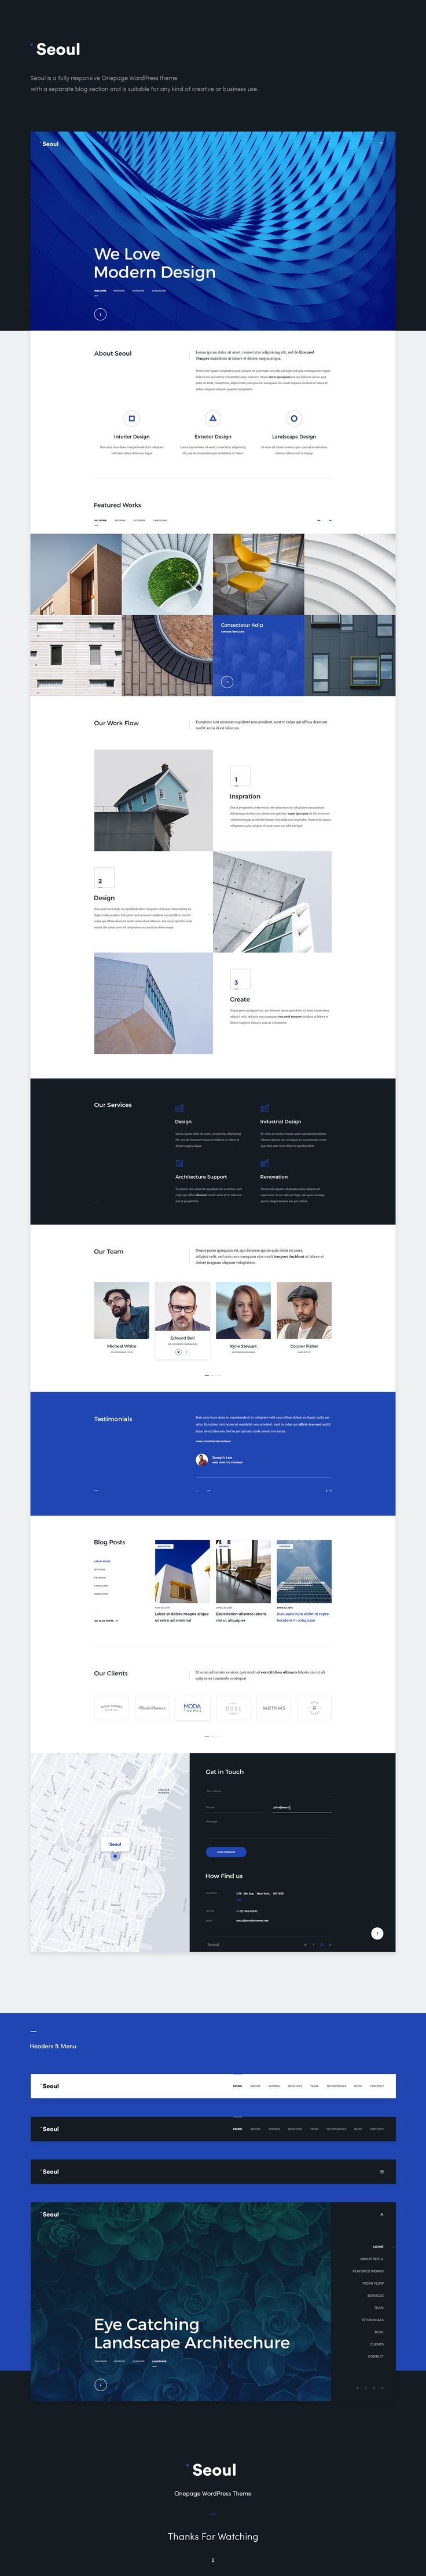 Seoul - WordPress Theme on Behance